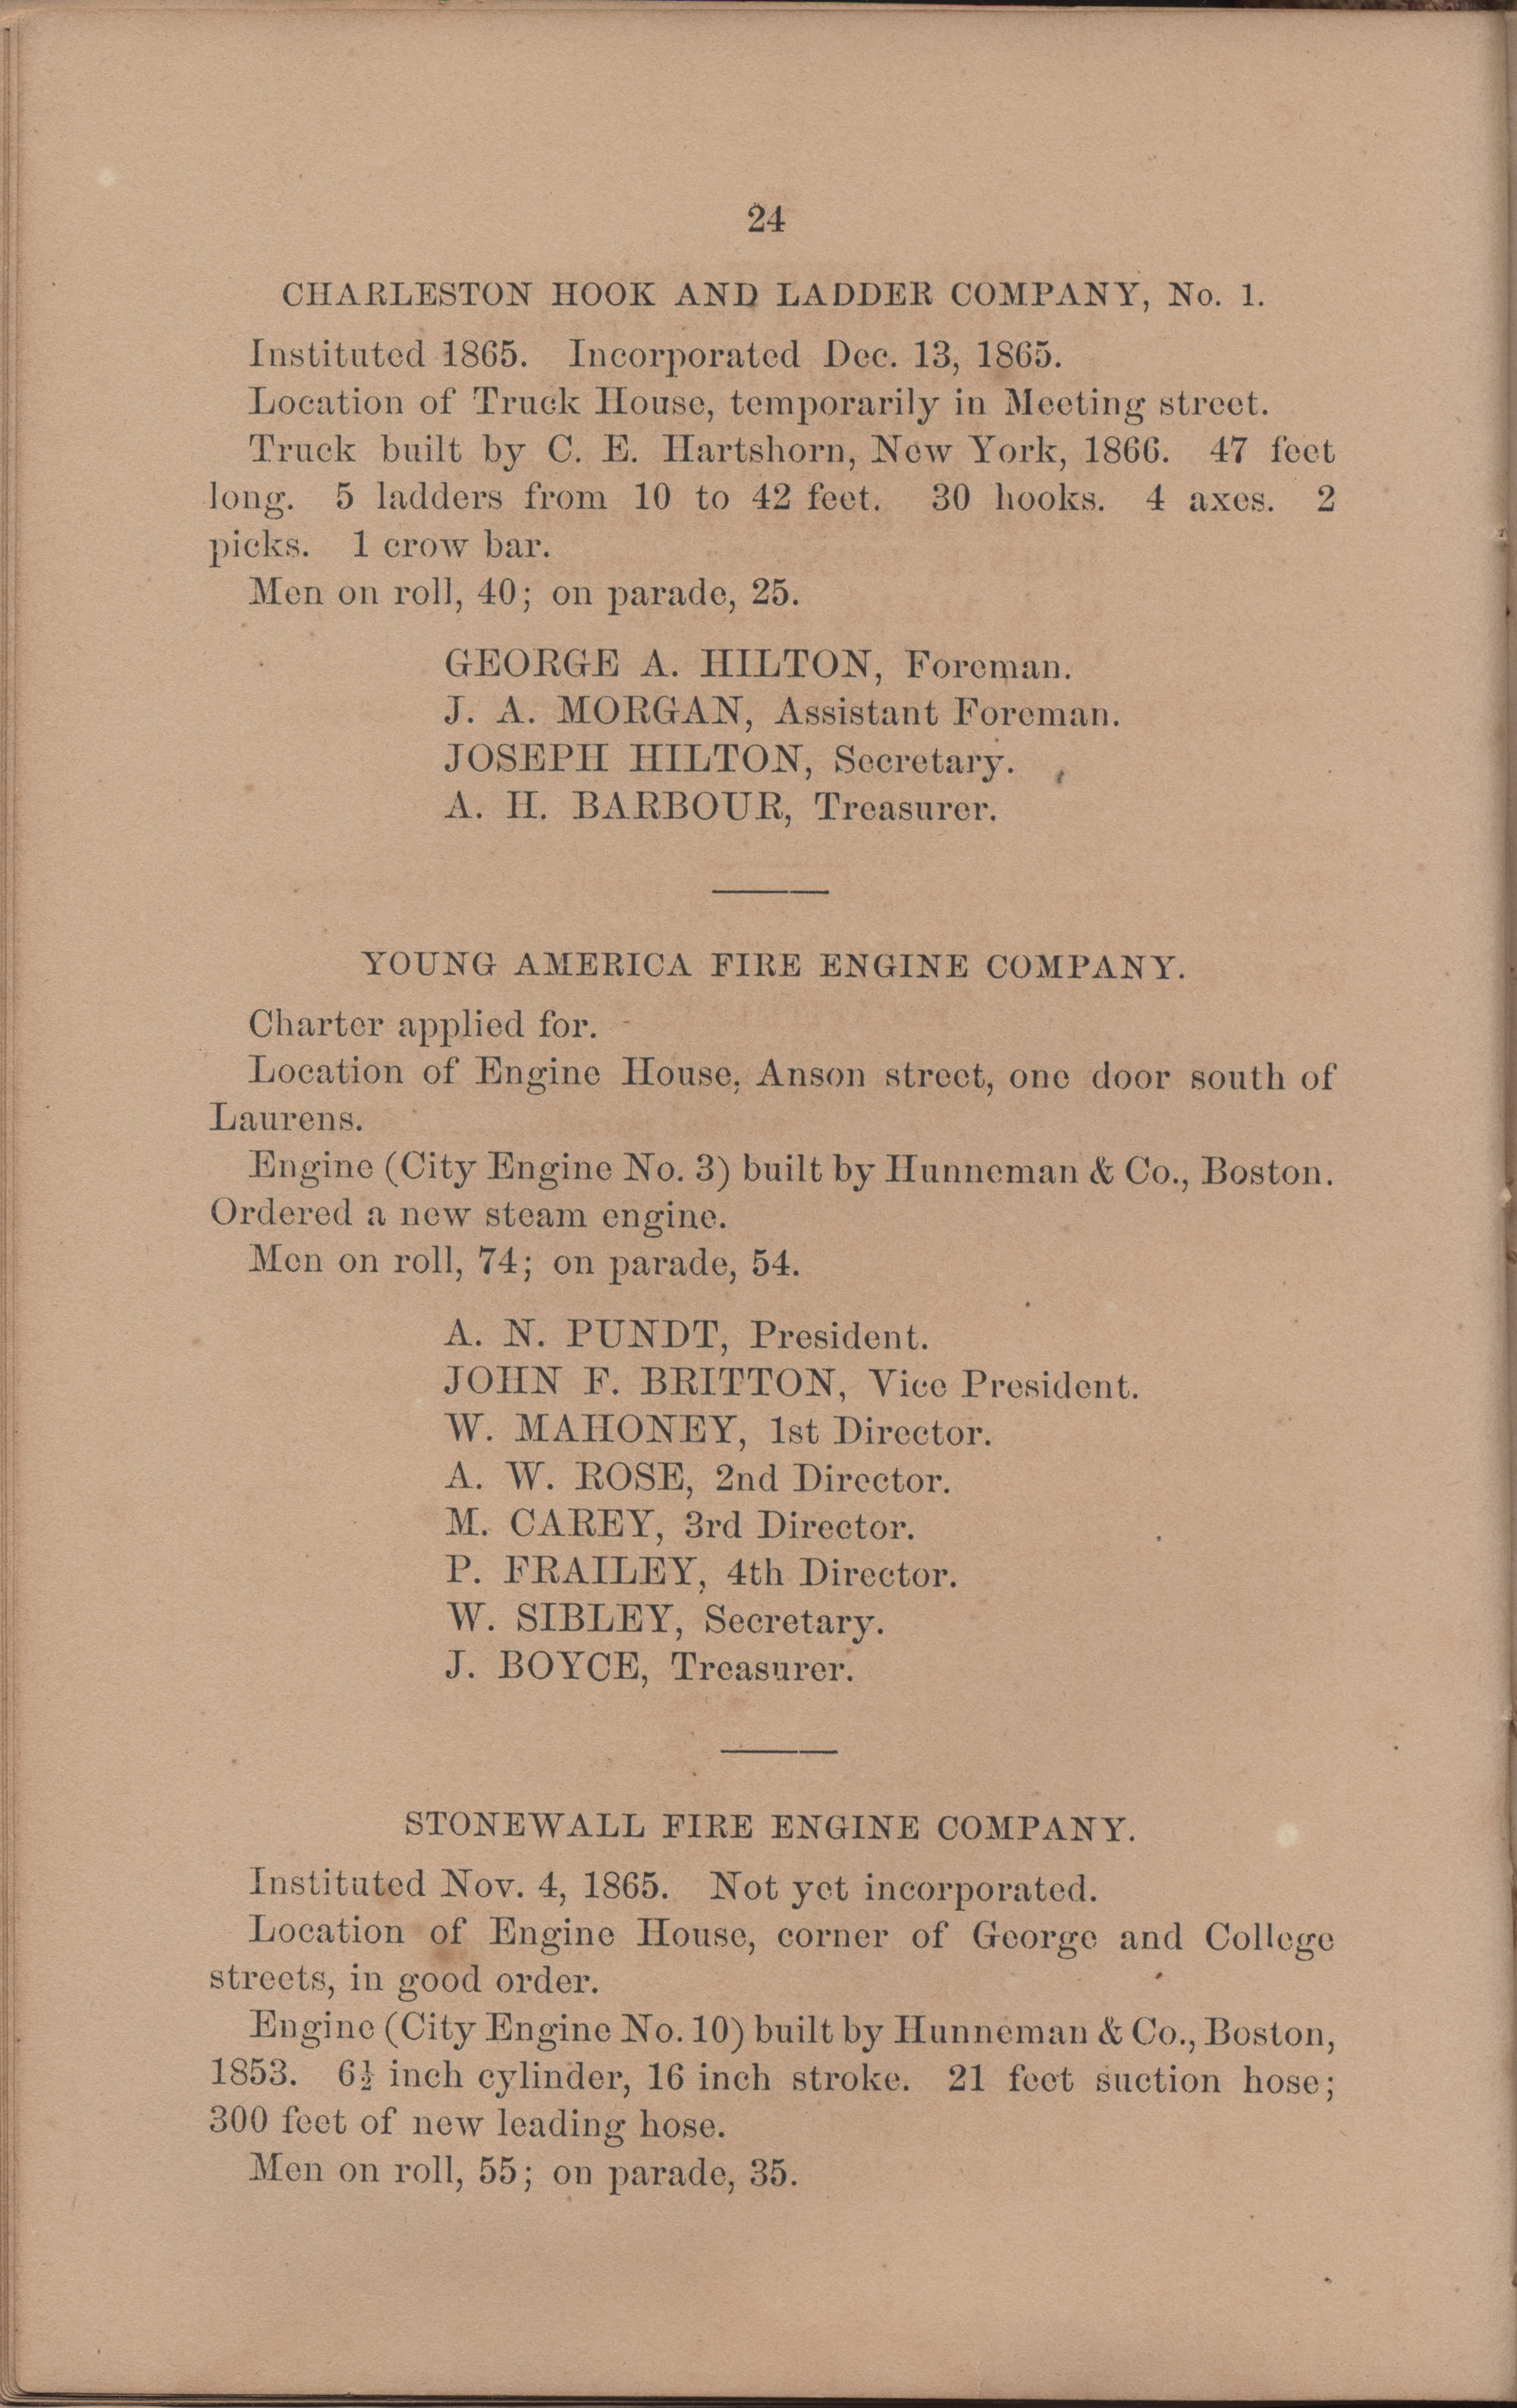 Annual Report of the Chief of the Fire Department of the City of Charleston, page 120